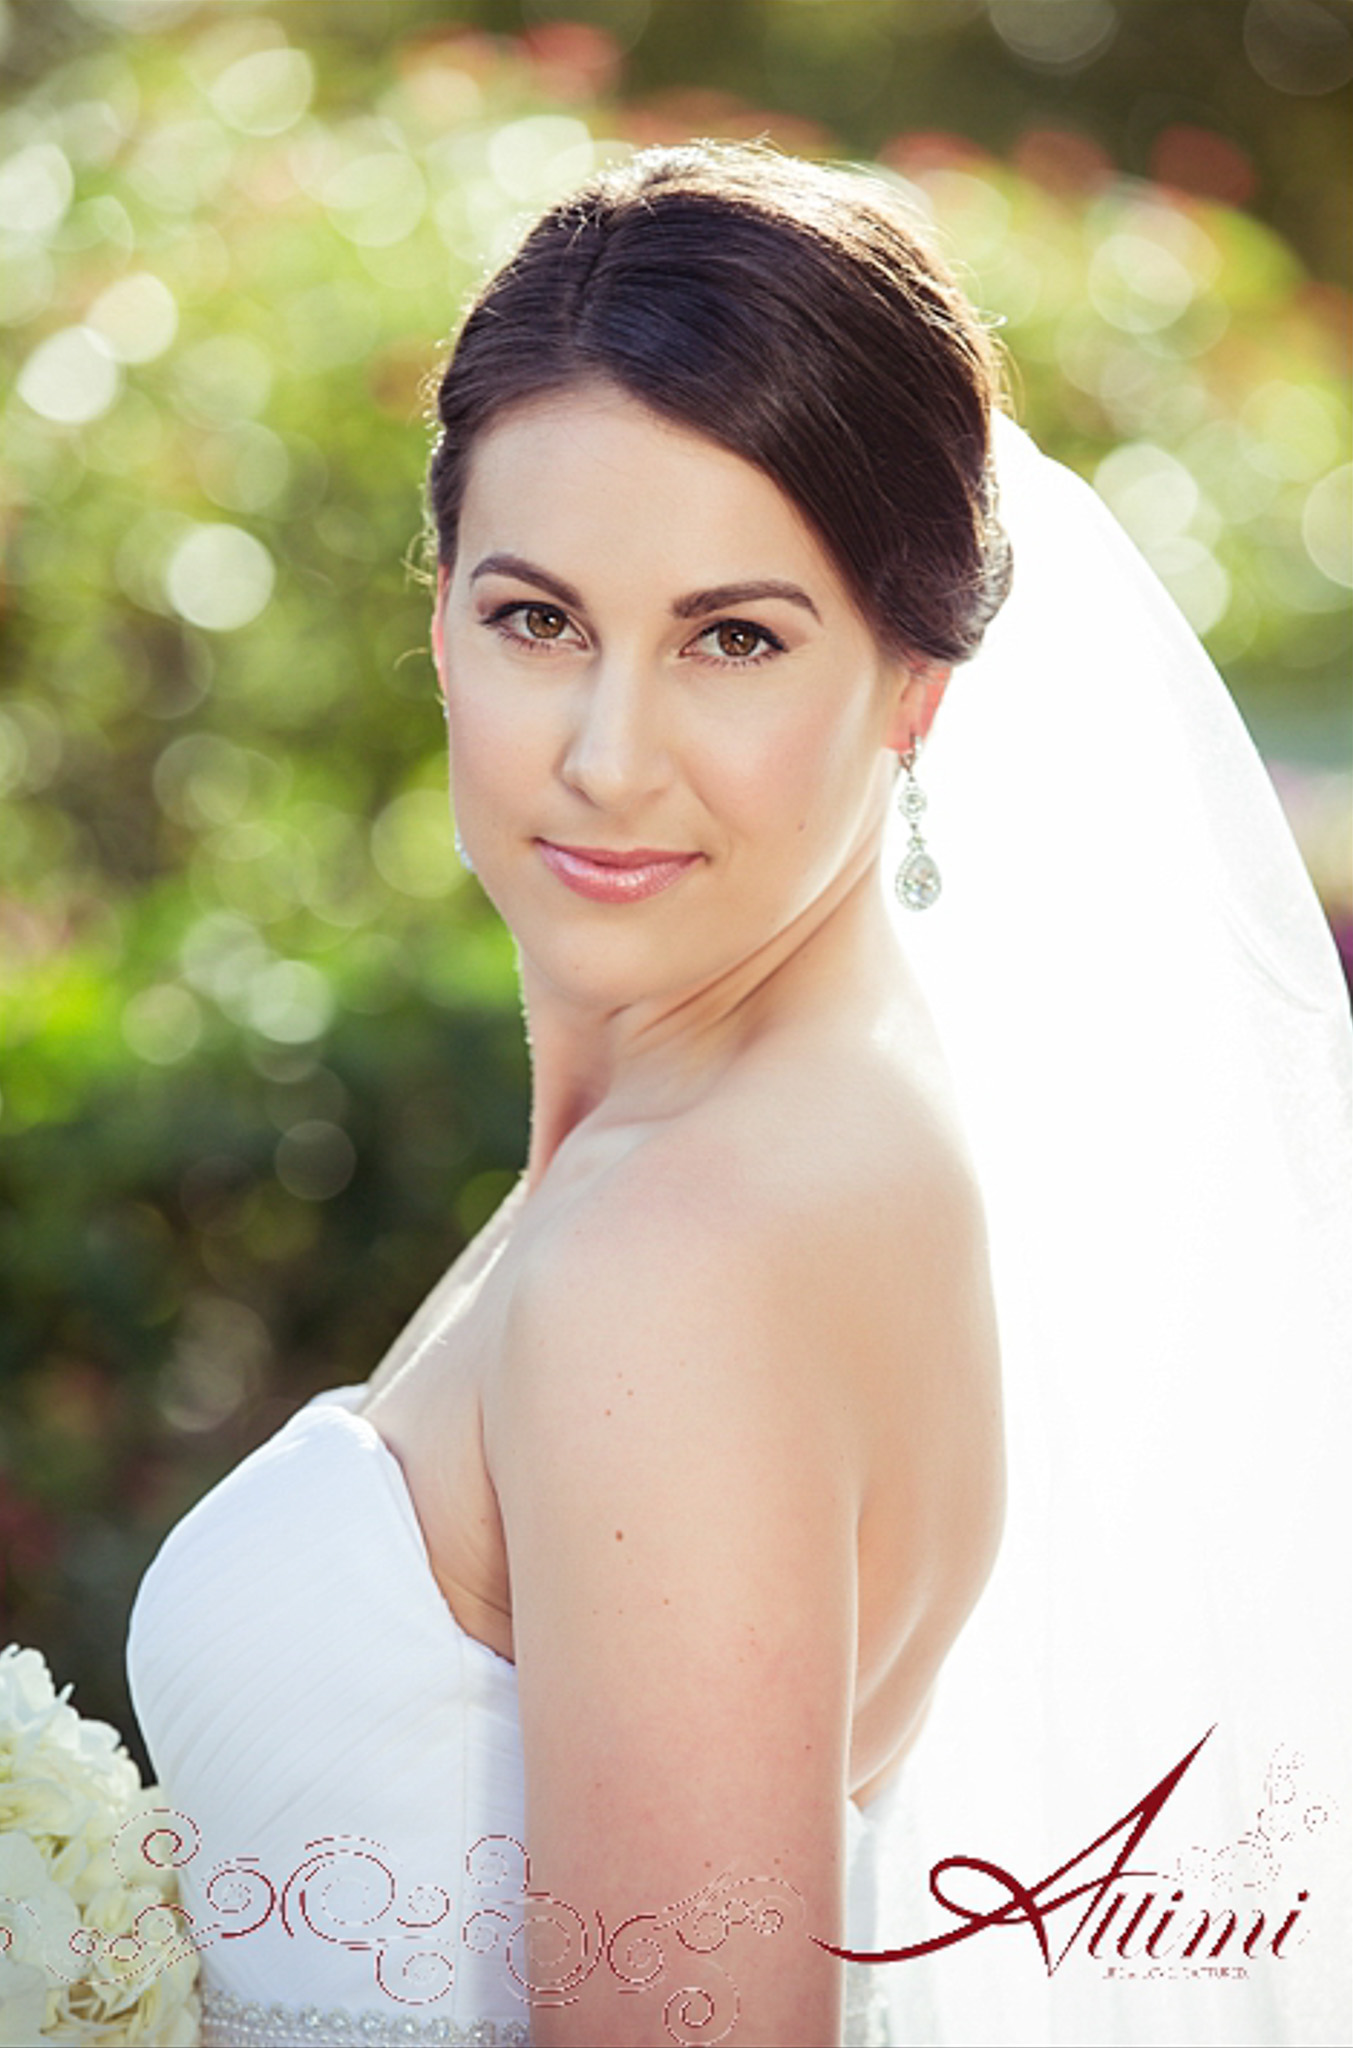 Thea Makeup Artistry Turks And Caicos Islands Destination Wedding Hair And Makeup Artist